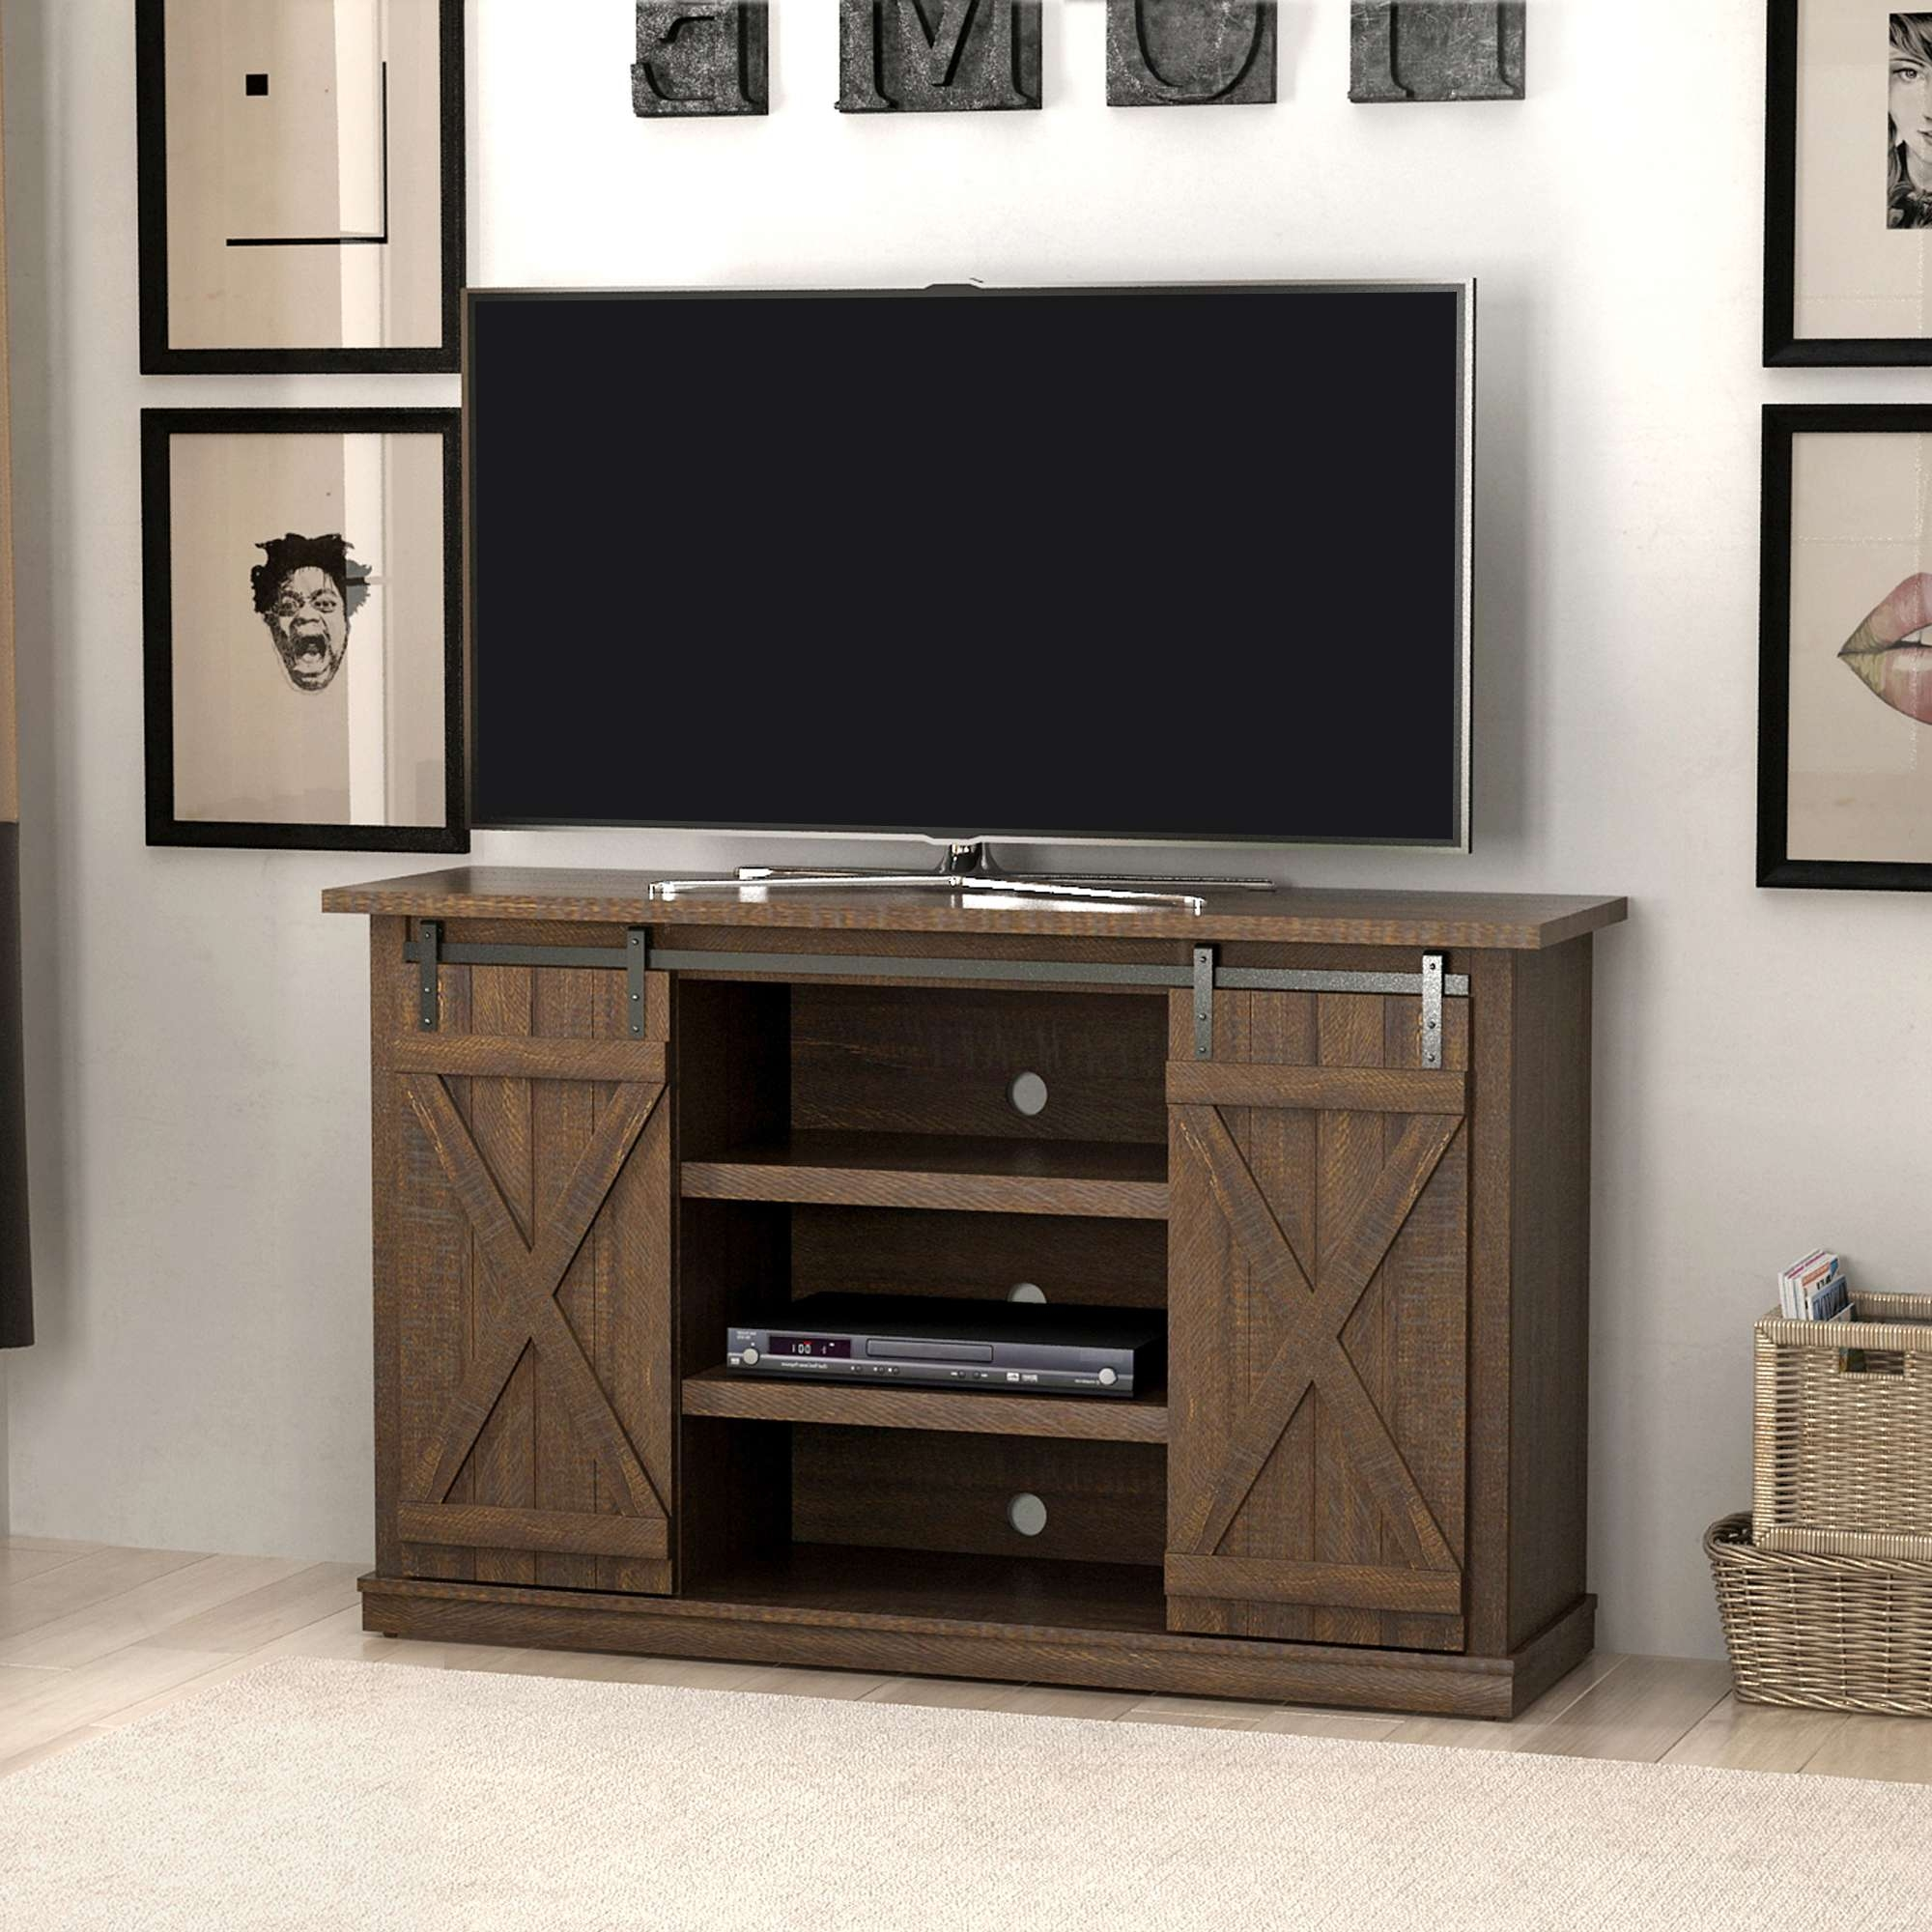 Tv Stands – Walmart In Tv Stands For Tube Tvs (View 14 of 15)